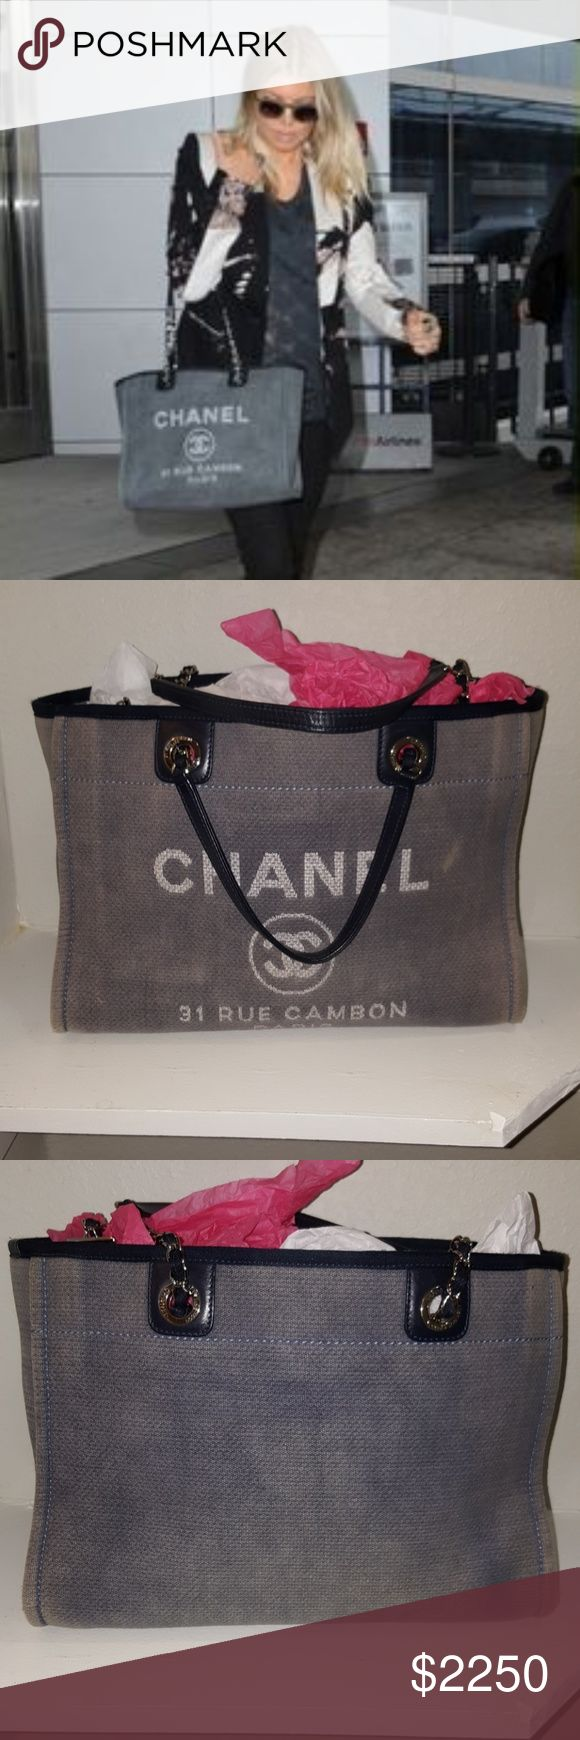 "CHANEL ""DENIM DEAUVILLE"" MEDIUM TOTE 100% AUTHENTIC. LIGHT USAGE. COMES WITH CARD. (NO DUST BAG). CLEAN INTERIOR. CORNERS SHOW SOME LIGHT RUBBING. OTHER THAN THAT, IT IS IN PERFECT CONDITION. FOR SALE OR TRADE WITH SELECTIVE POSHERS.  MAKE YOUR OFFER USING THE BUTTON. THANKS. CHANEL Bags Totes"